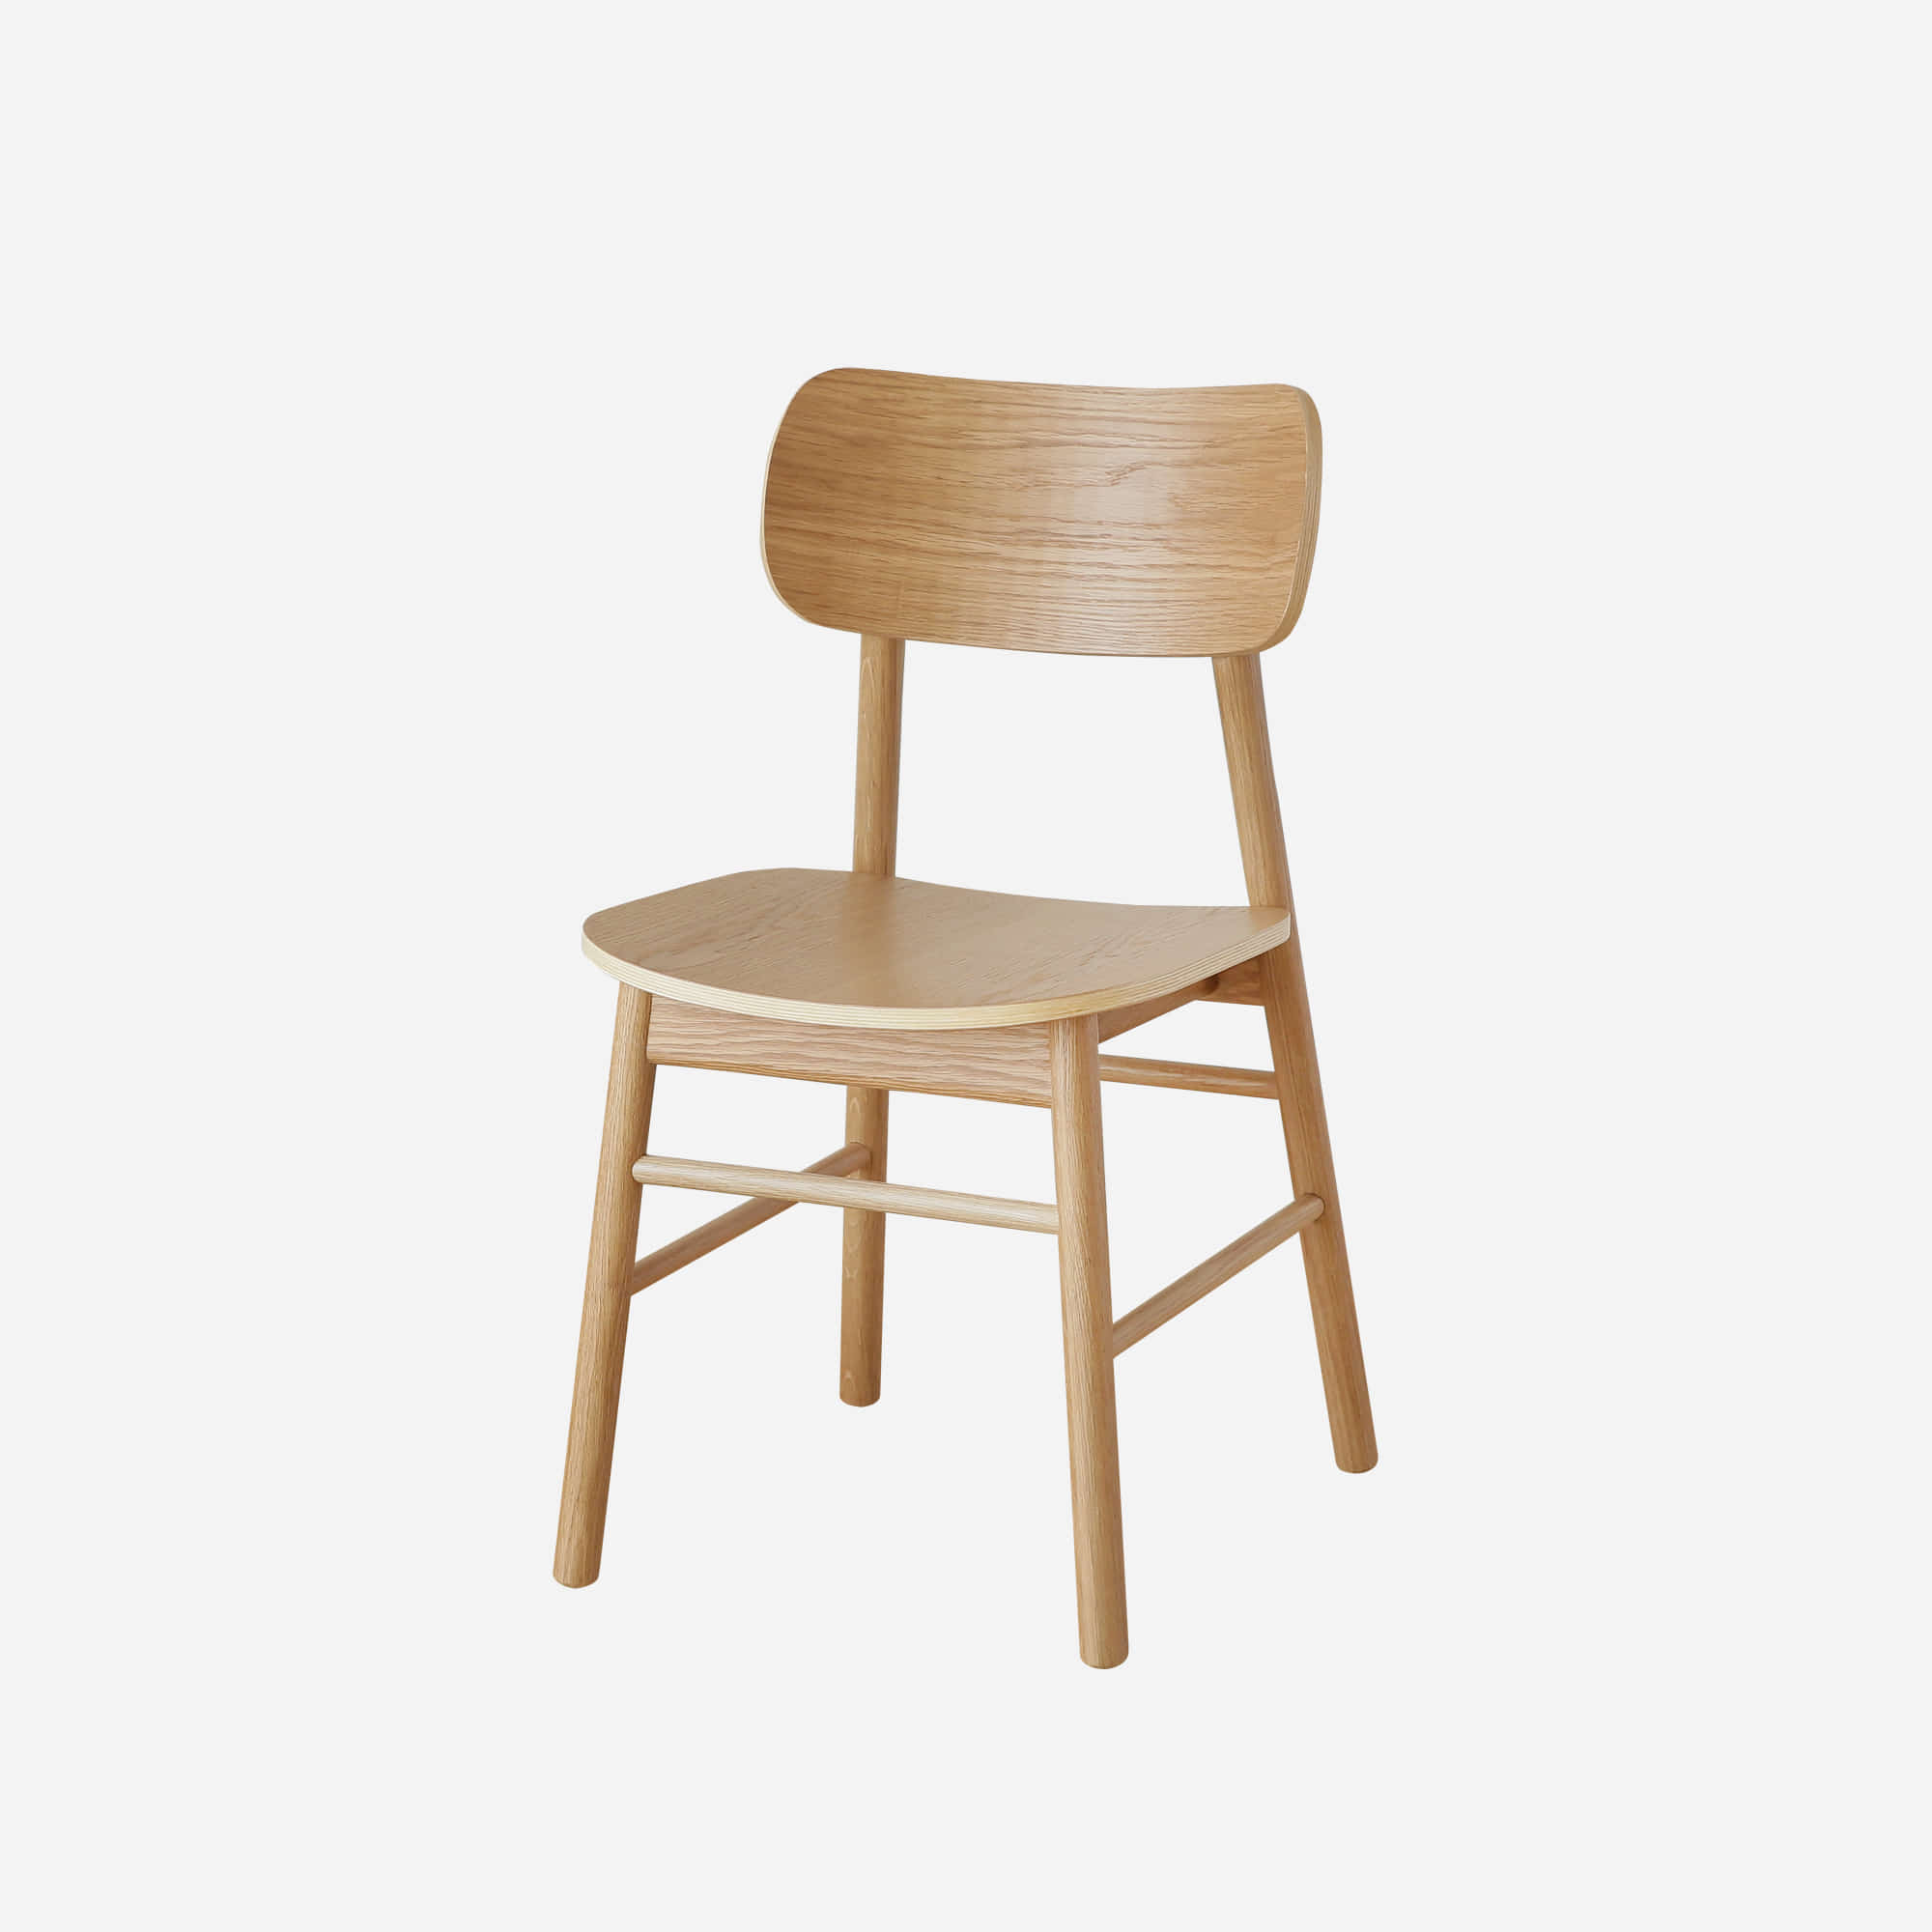 [얼리버드] Oblique Stick Leg P2 Chair (manufactured by China)